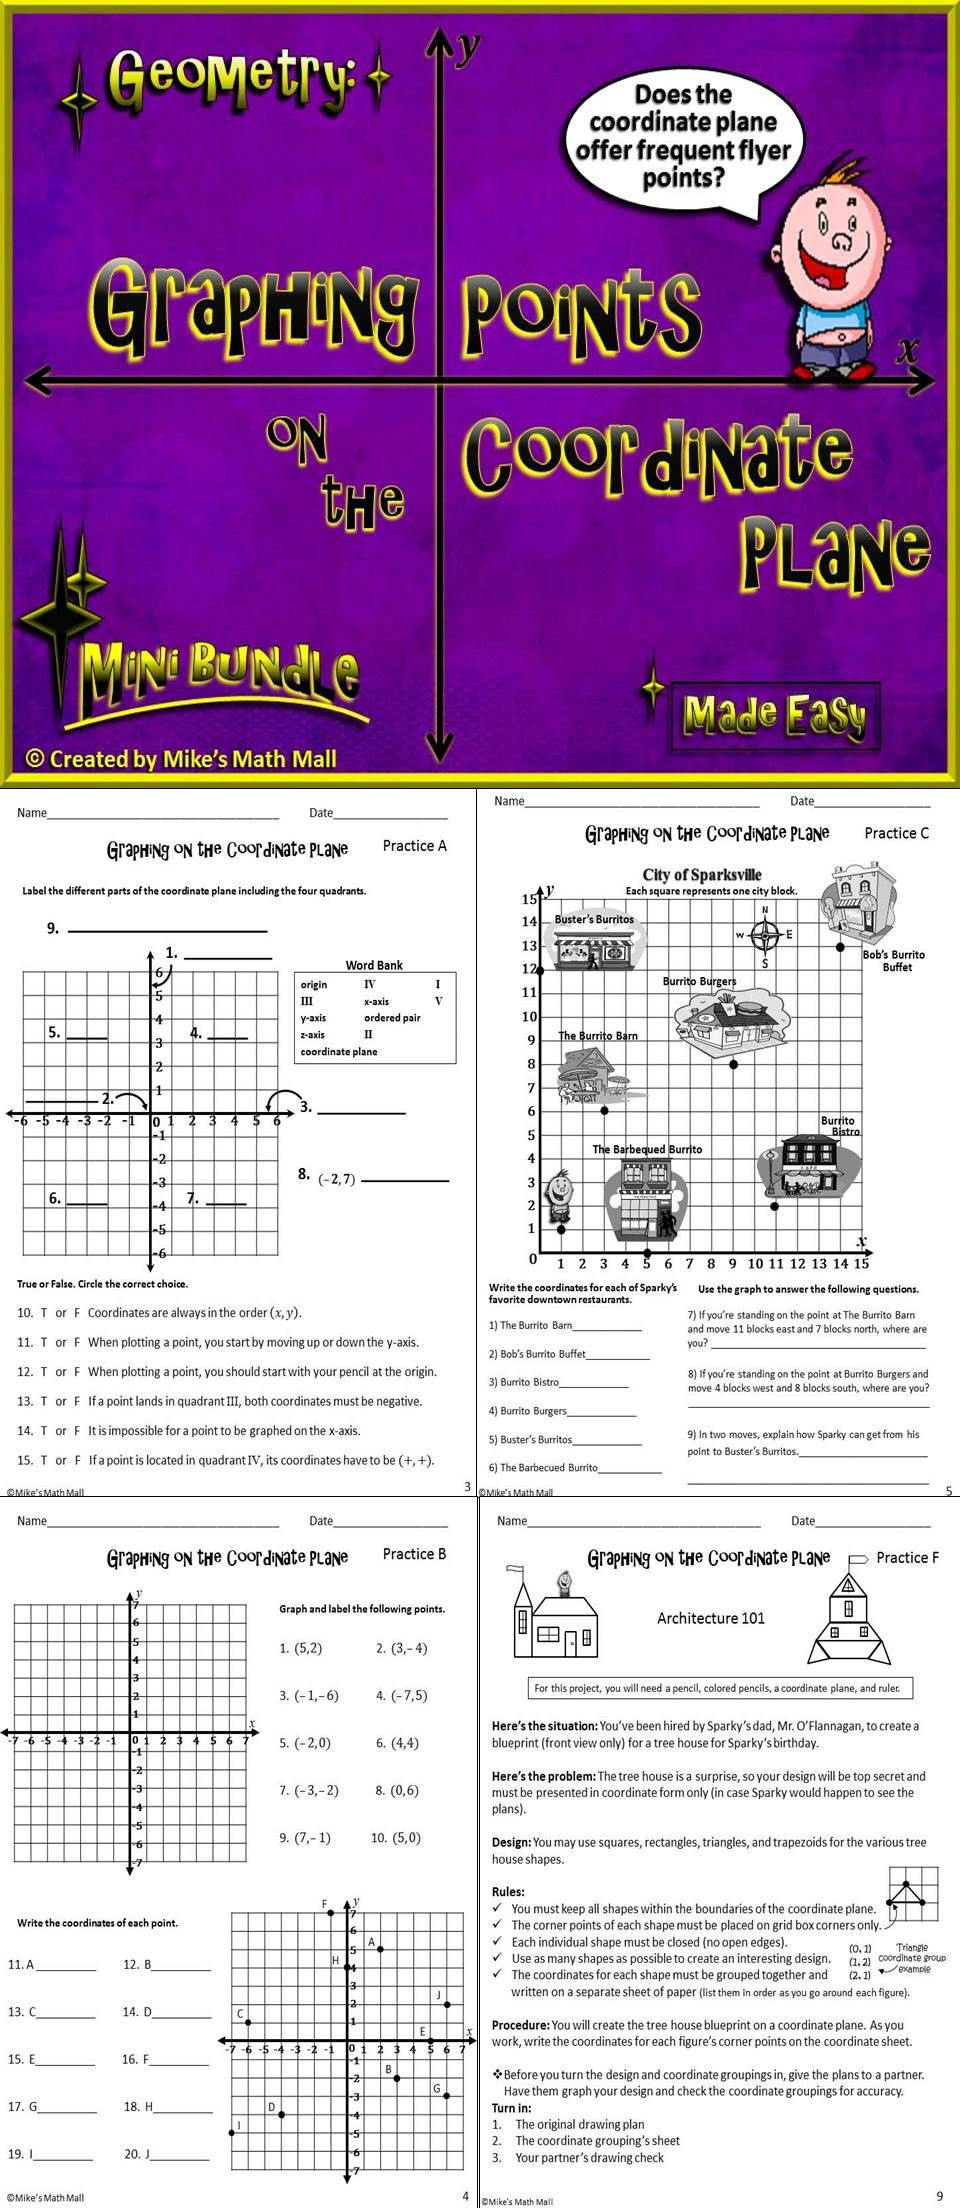 Coordinate Plane Worksheets Middle School Graph Points On the Coordinate Plane Mini Bundle